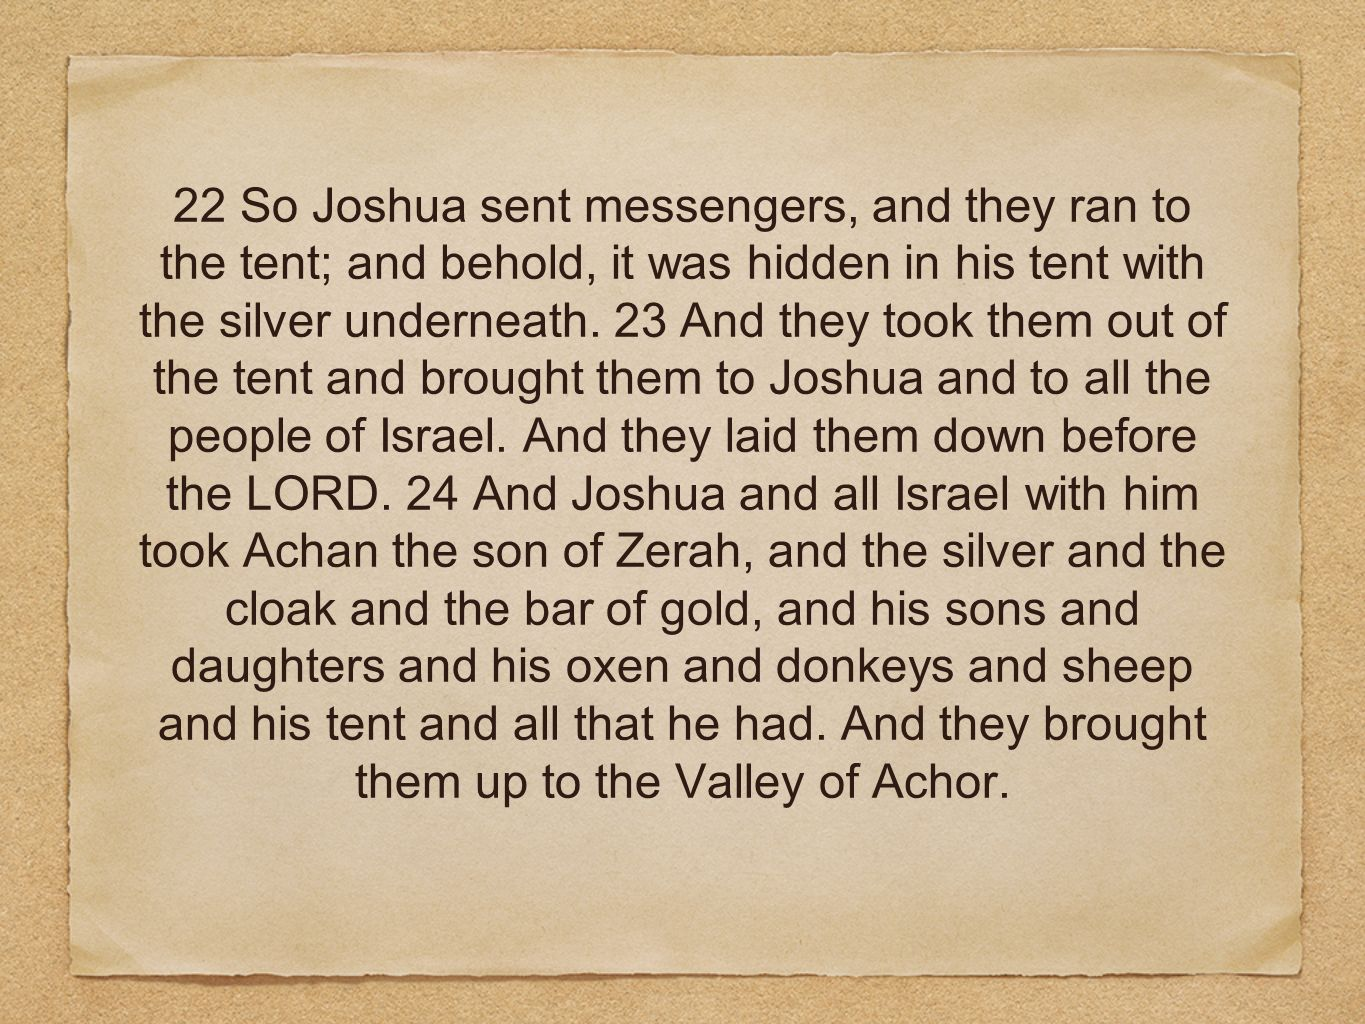 22 So Joshua sent messengers, and they ran to the tent; and behold, it was hidden in his tent with the silver underneath.